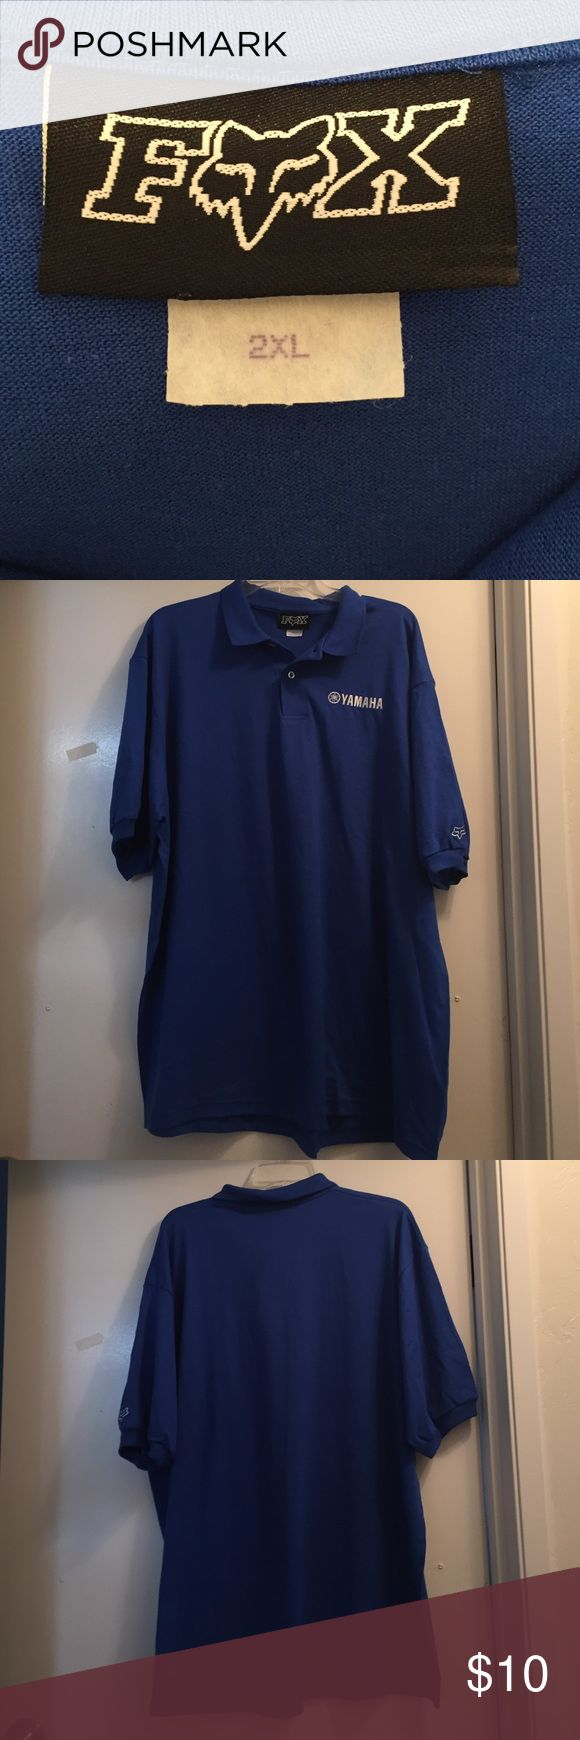 """Mens Fox brand polo shirt for sale! Size 2 XL Mens Fox Brand polo shirt for sale! 100% cotton. Front left of shirt has """"Yamaha"""" embroidered. Fox brand logo embroidered on left sleeve. Have 24 to sell! Buy one or buy all! Make an offer! Fox Shirts Polos"""